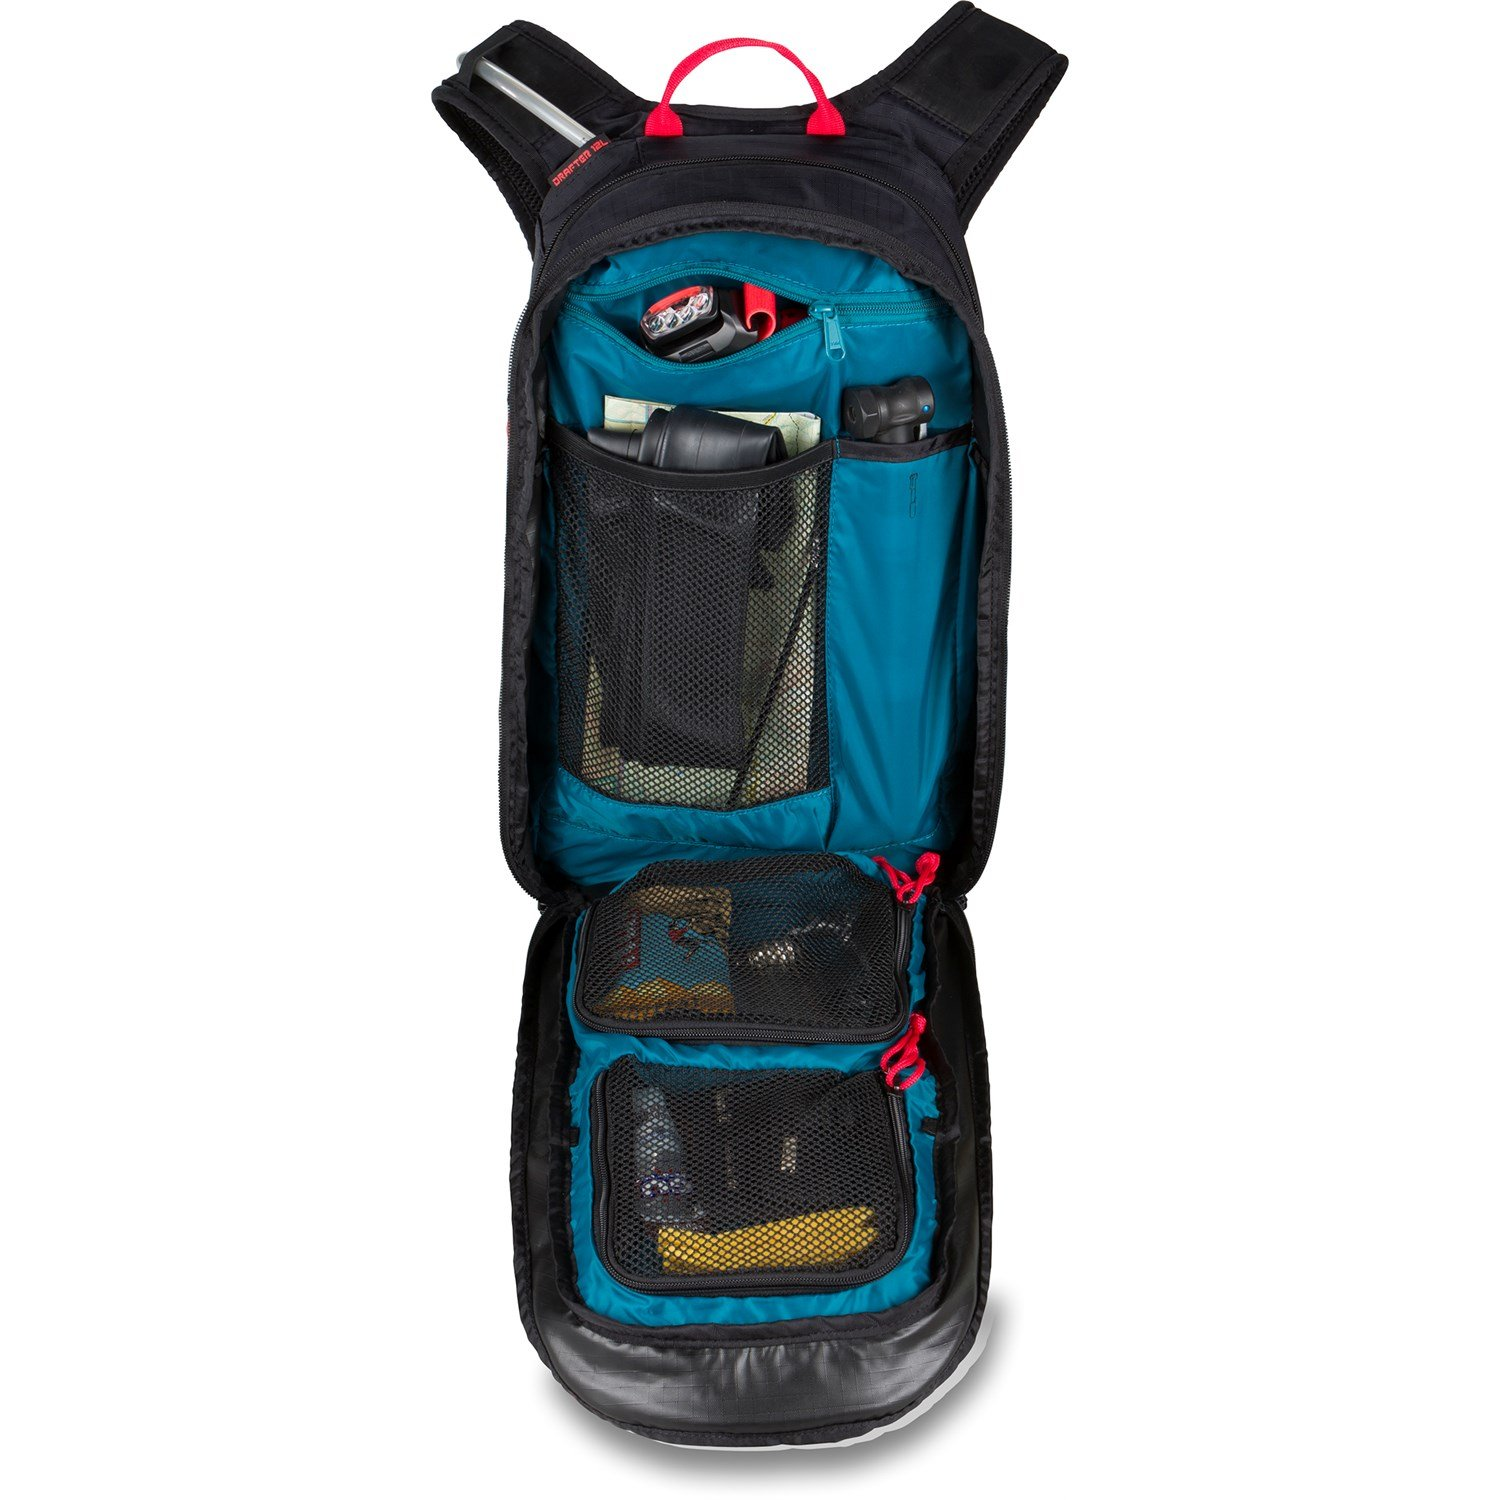 Dakine Drafter 12L Hydration Pack - Women's | evo outlet